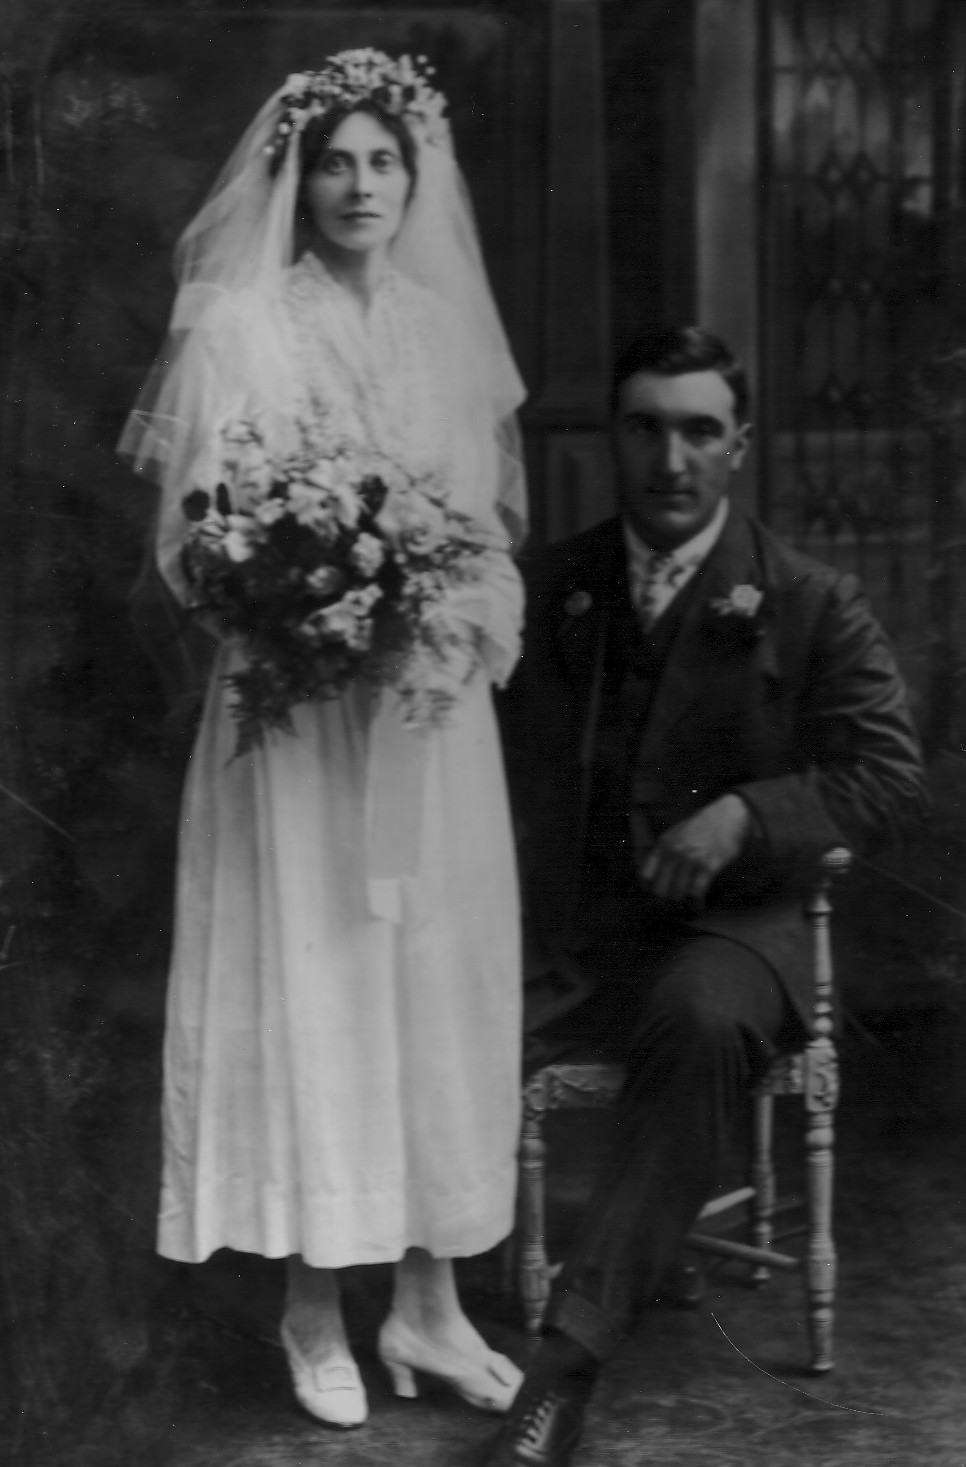 bertha-elizabeth-hucks-albert-william-knott-wedding-1919